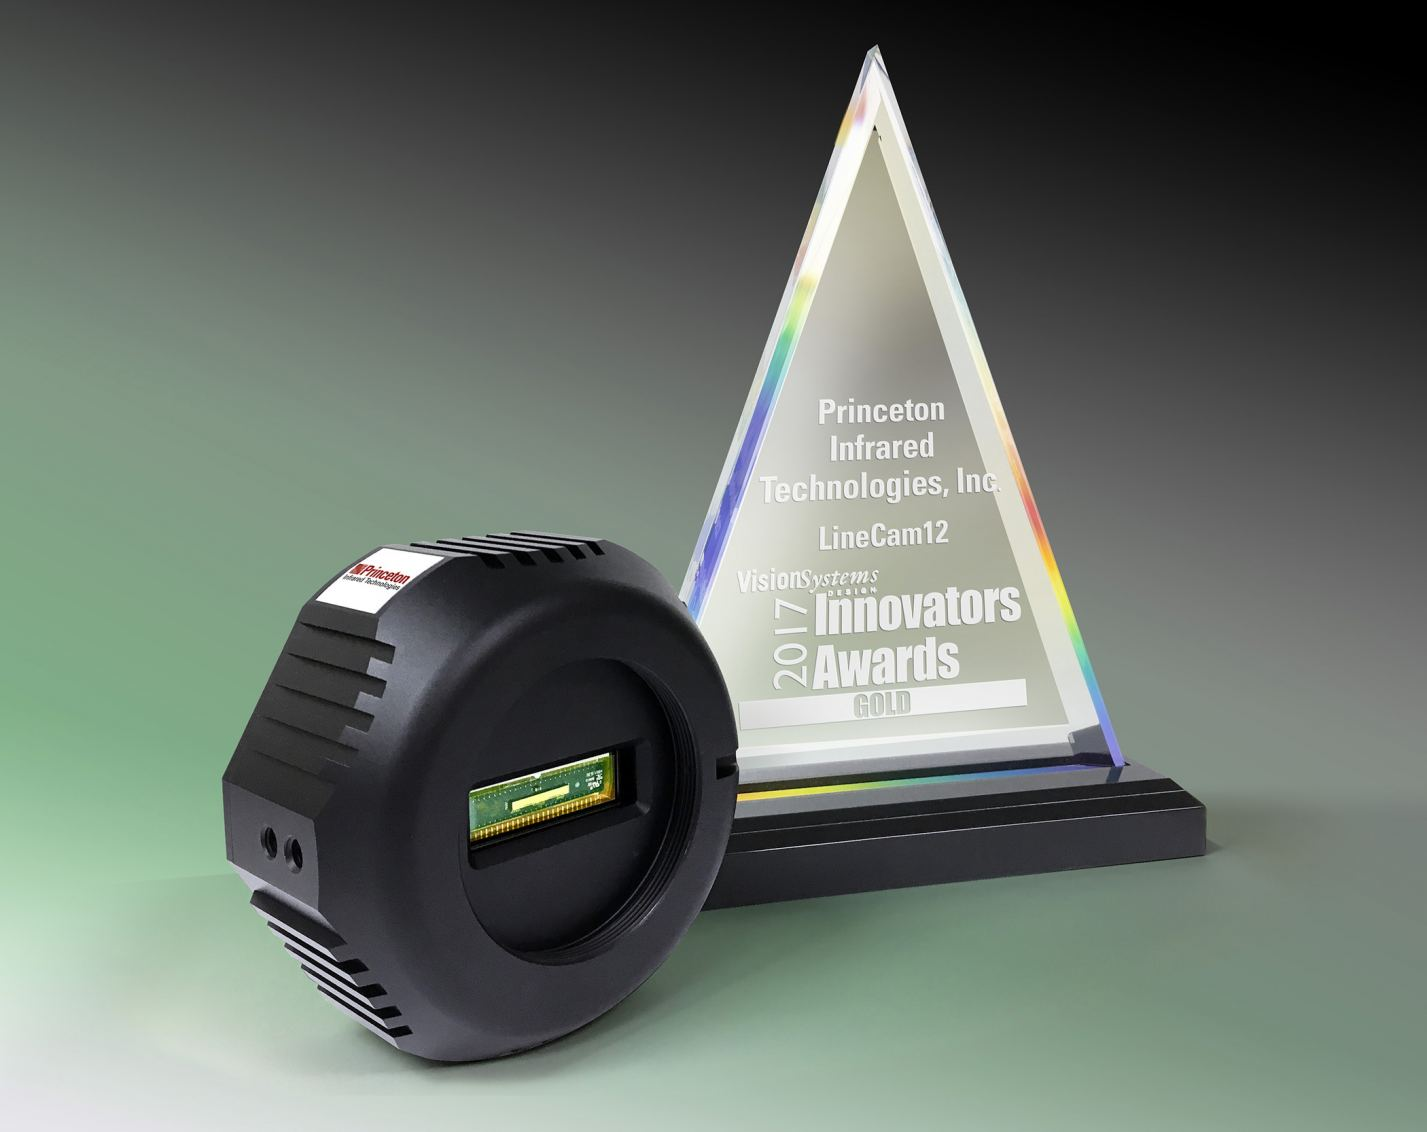 Princeton Infrared Technologies Receives Vision Systems